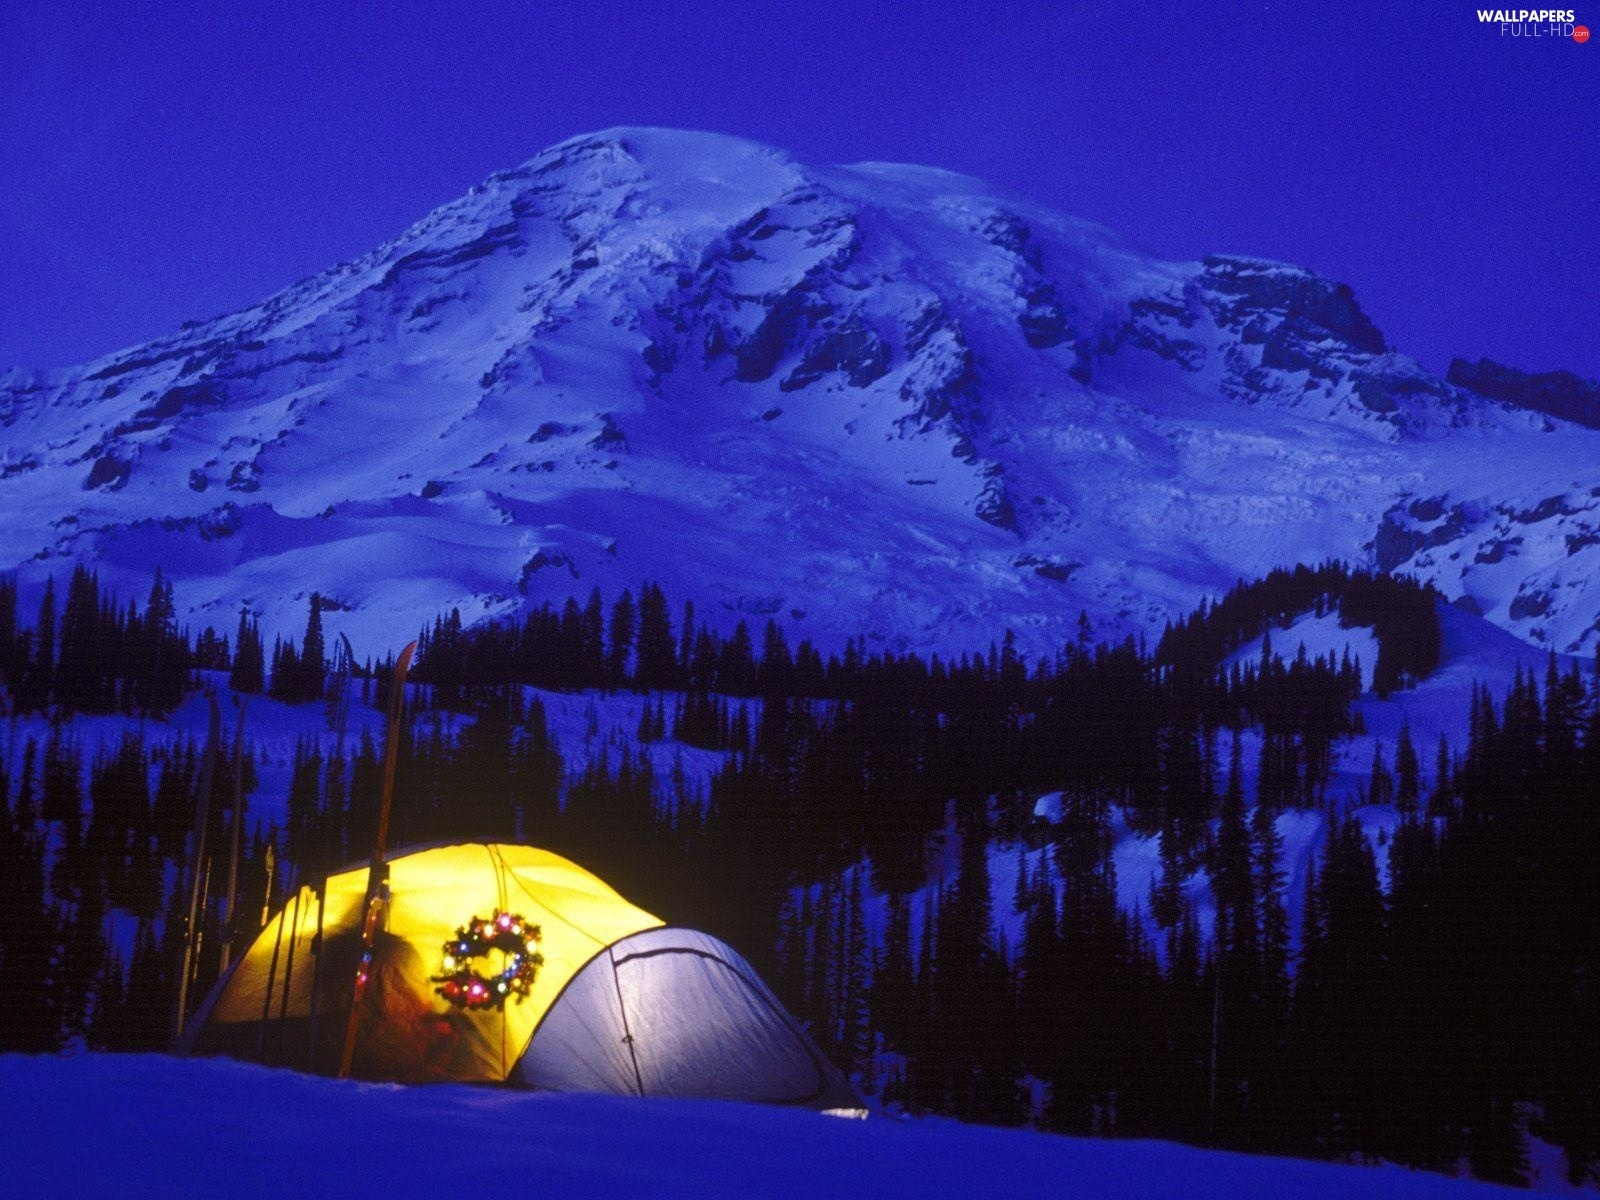 christmas, Tent, Mountains, Night